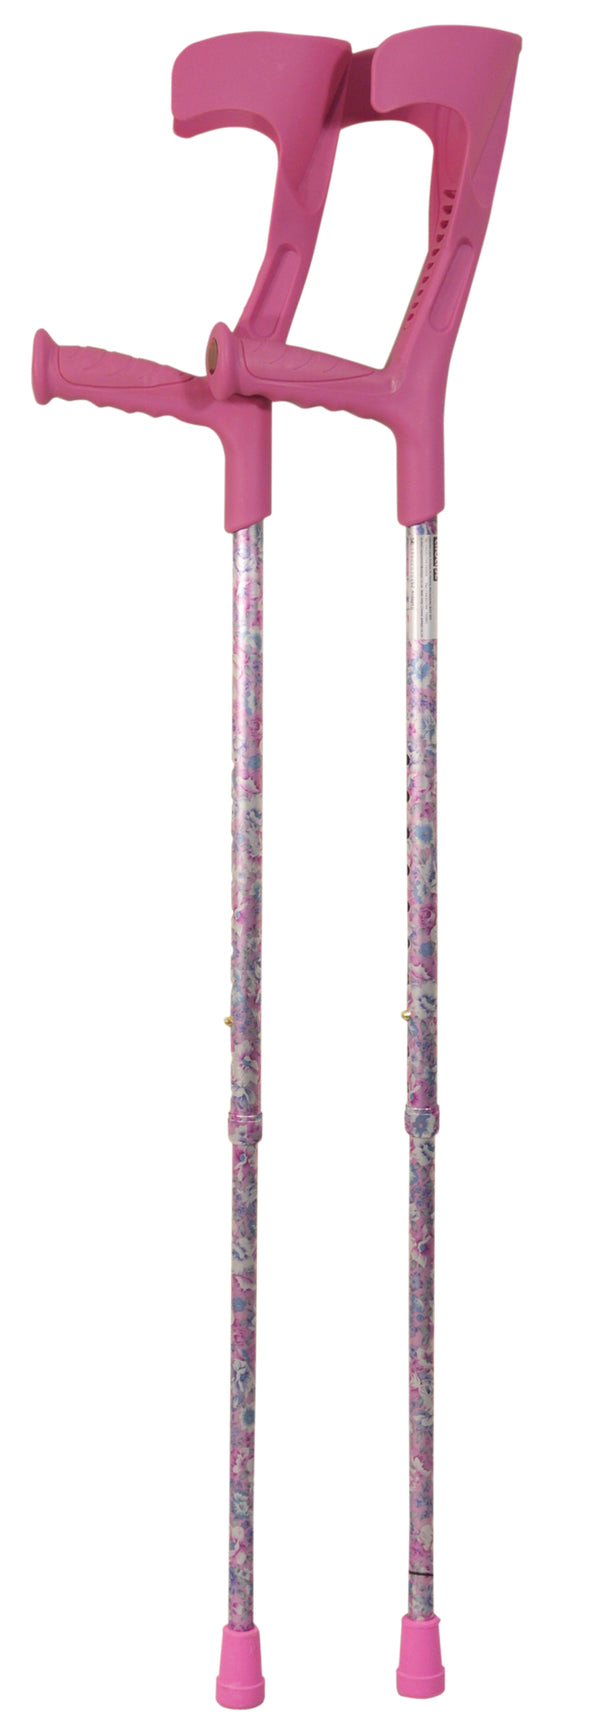 Pair of pink floral crutches with pink elbow rests, handles and ferrules